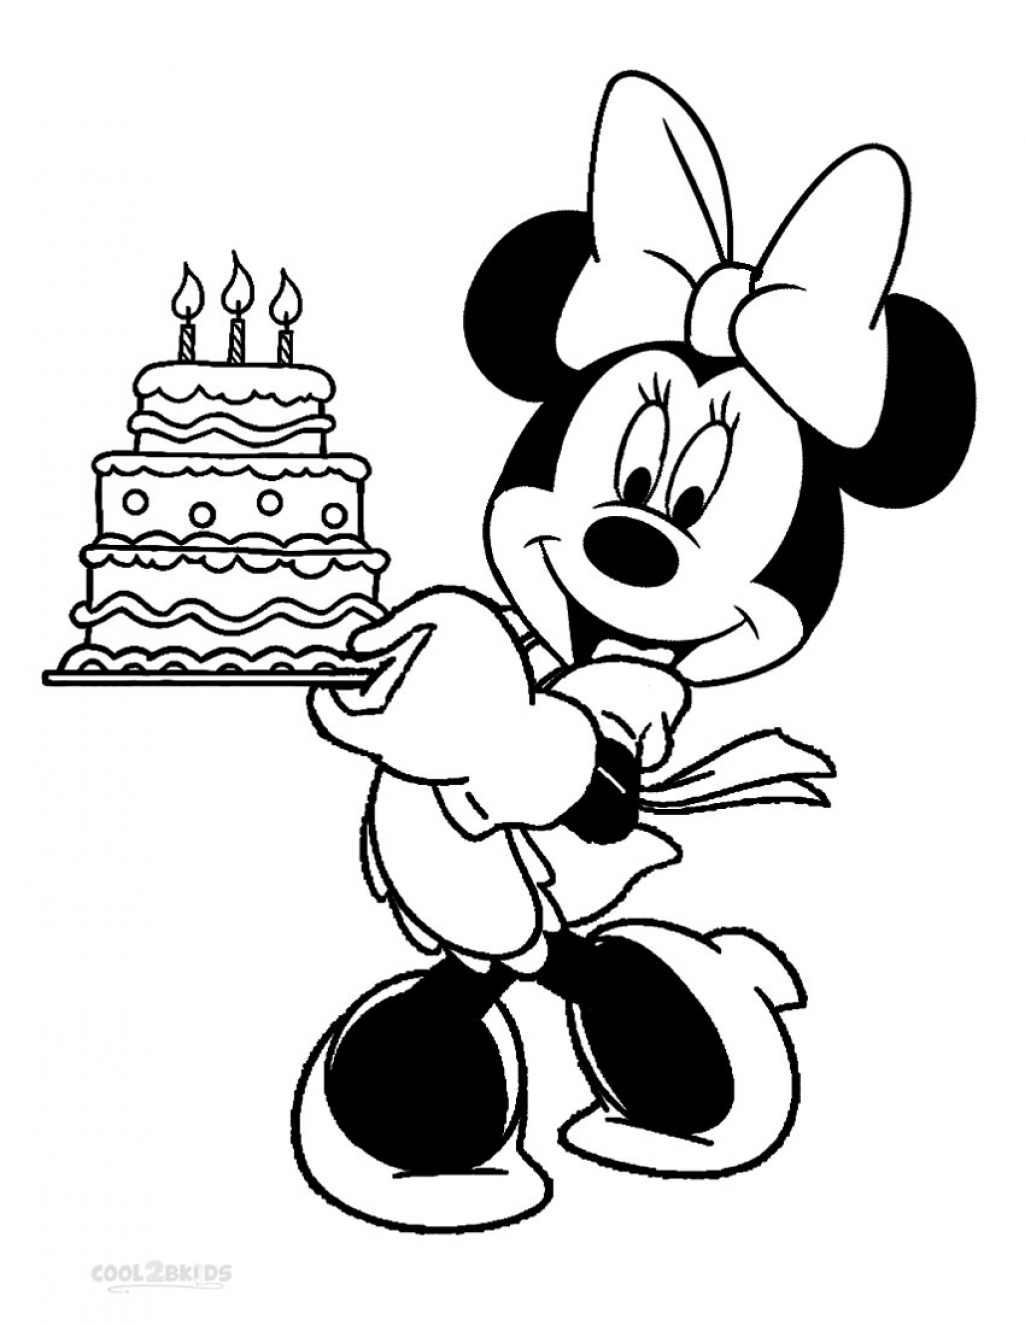 Free Disney Minnie Mouse Coloring